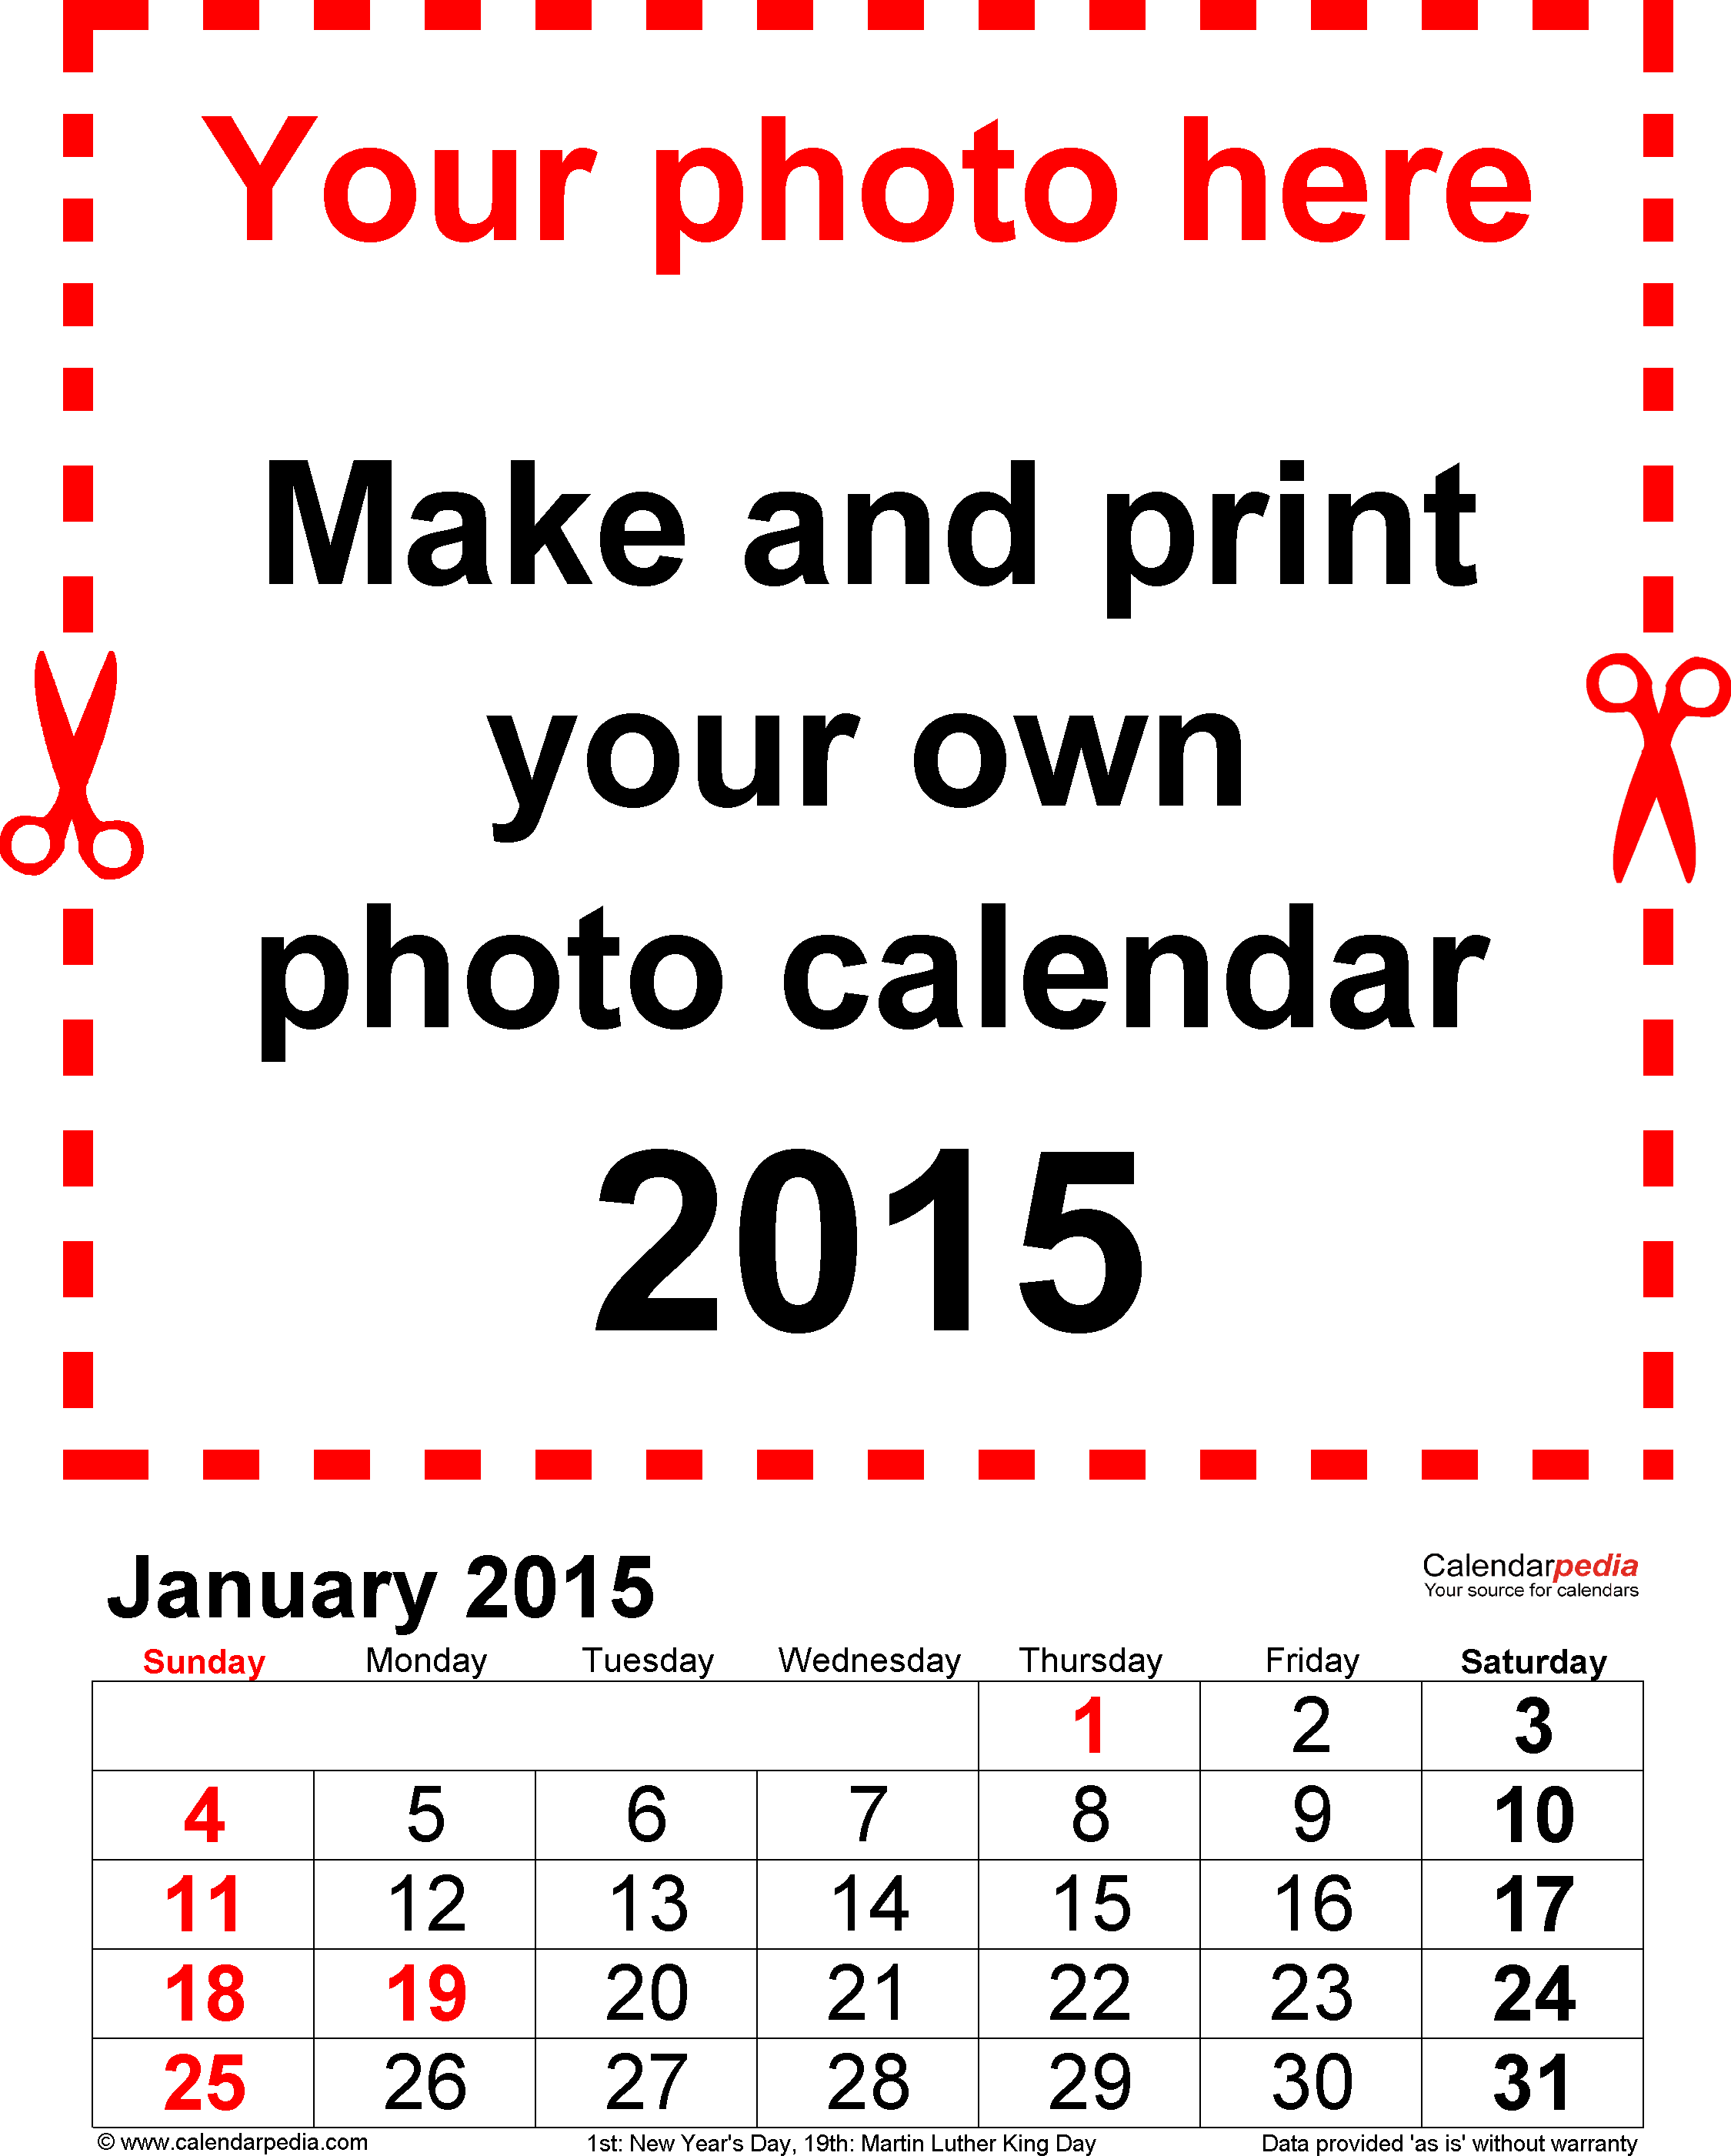 template 2 photo calendar 2015 for word 12 pages portrait format large